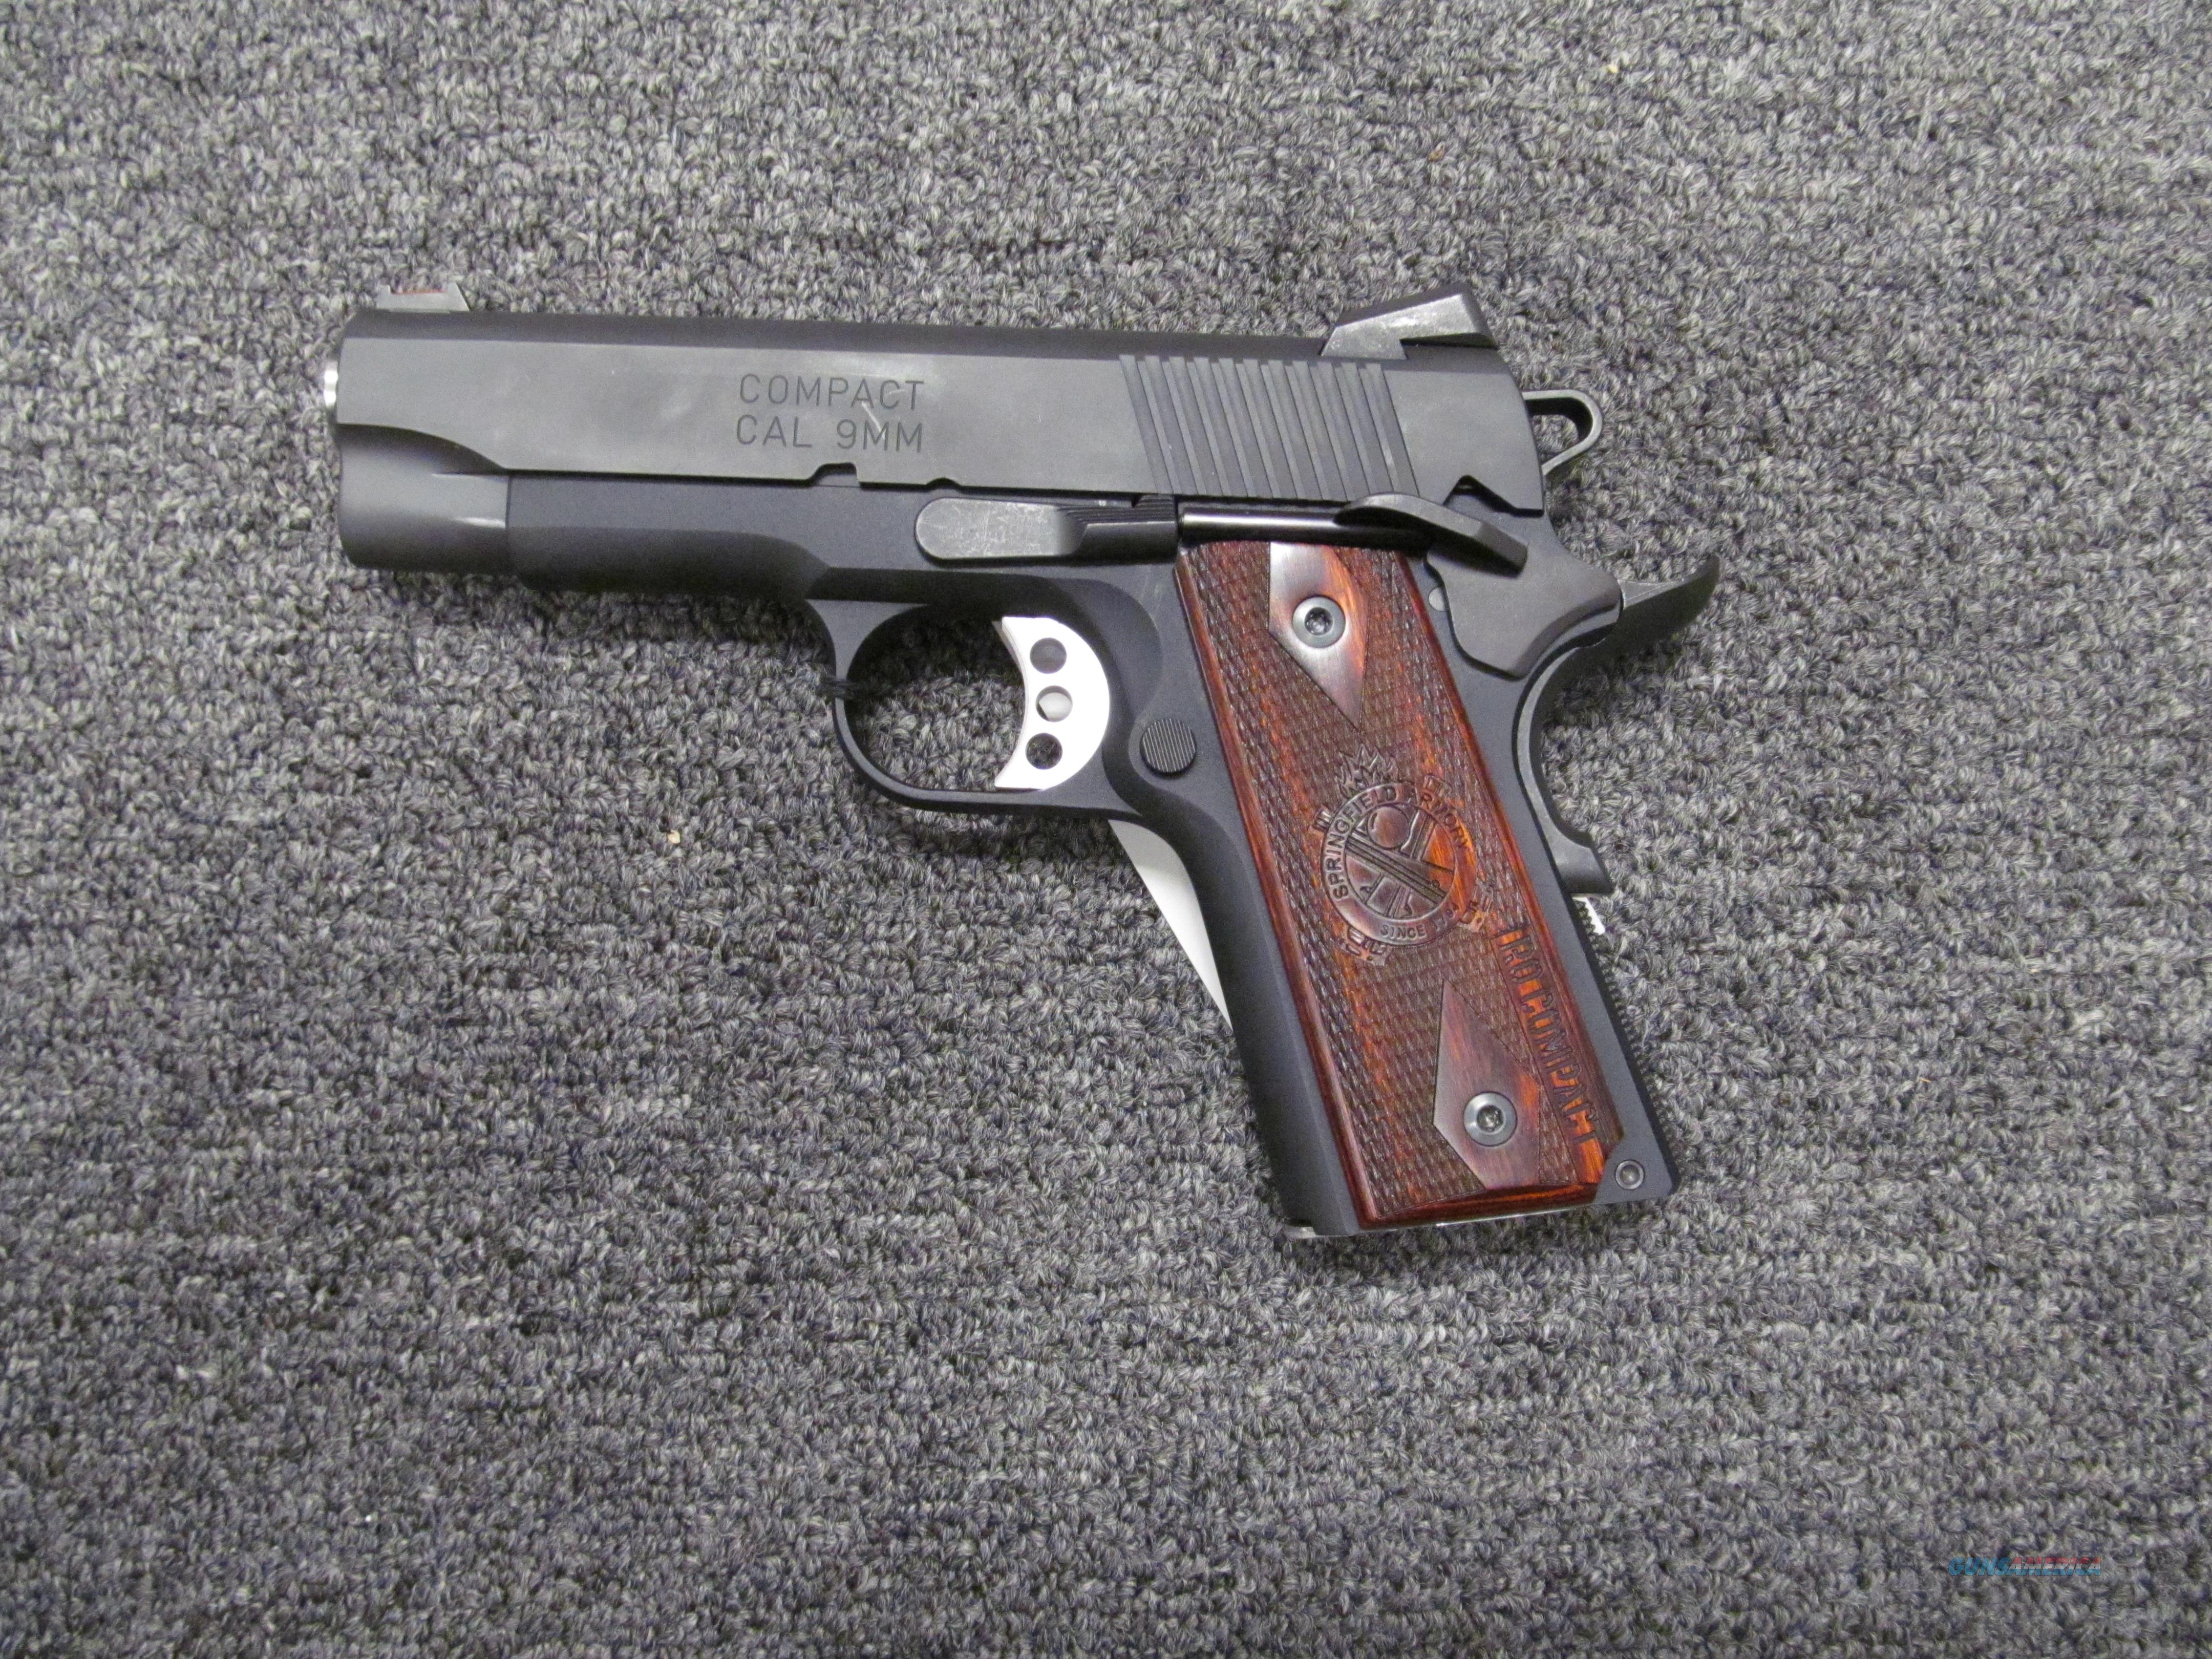 Springfield Armory 1911 Range Officer Compact 9mm  Guns > Pistols > Springfield Armory Pistols > 1911 Type